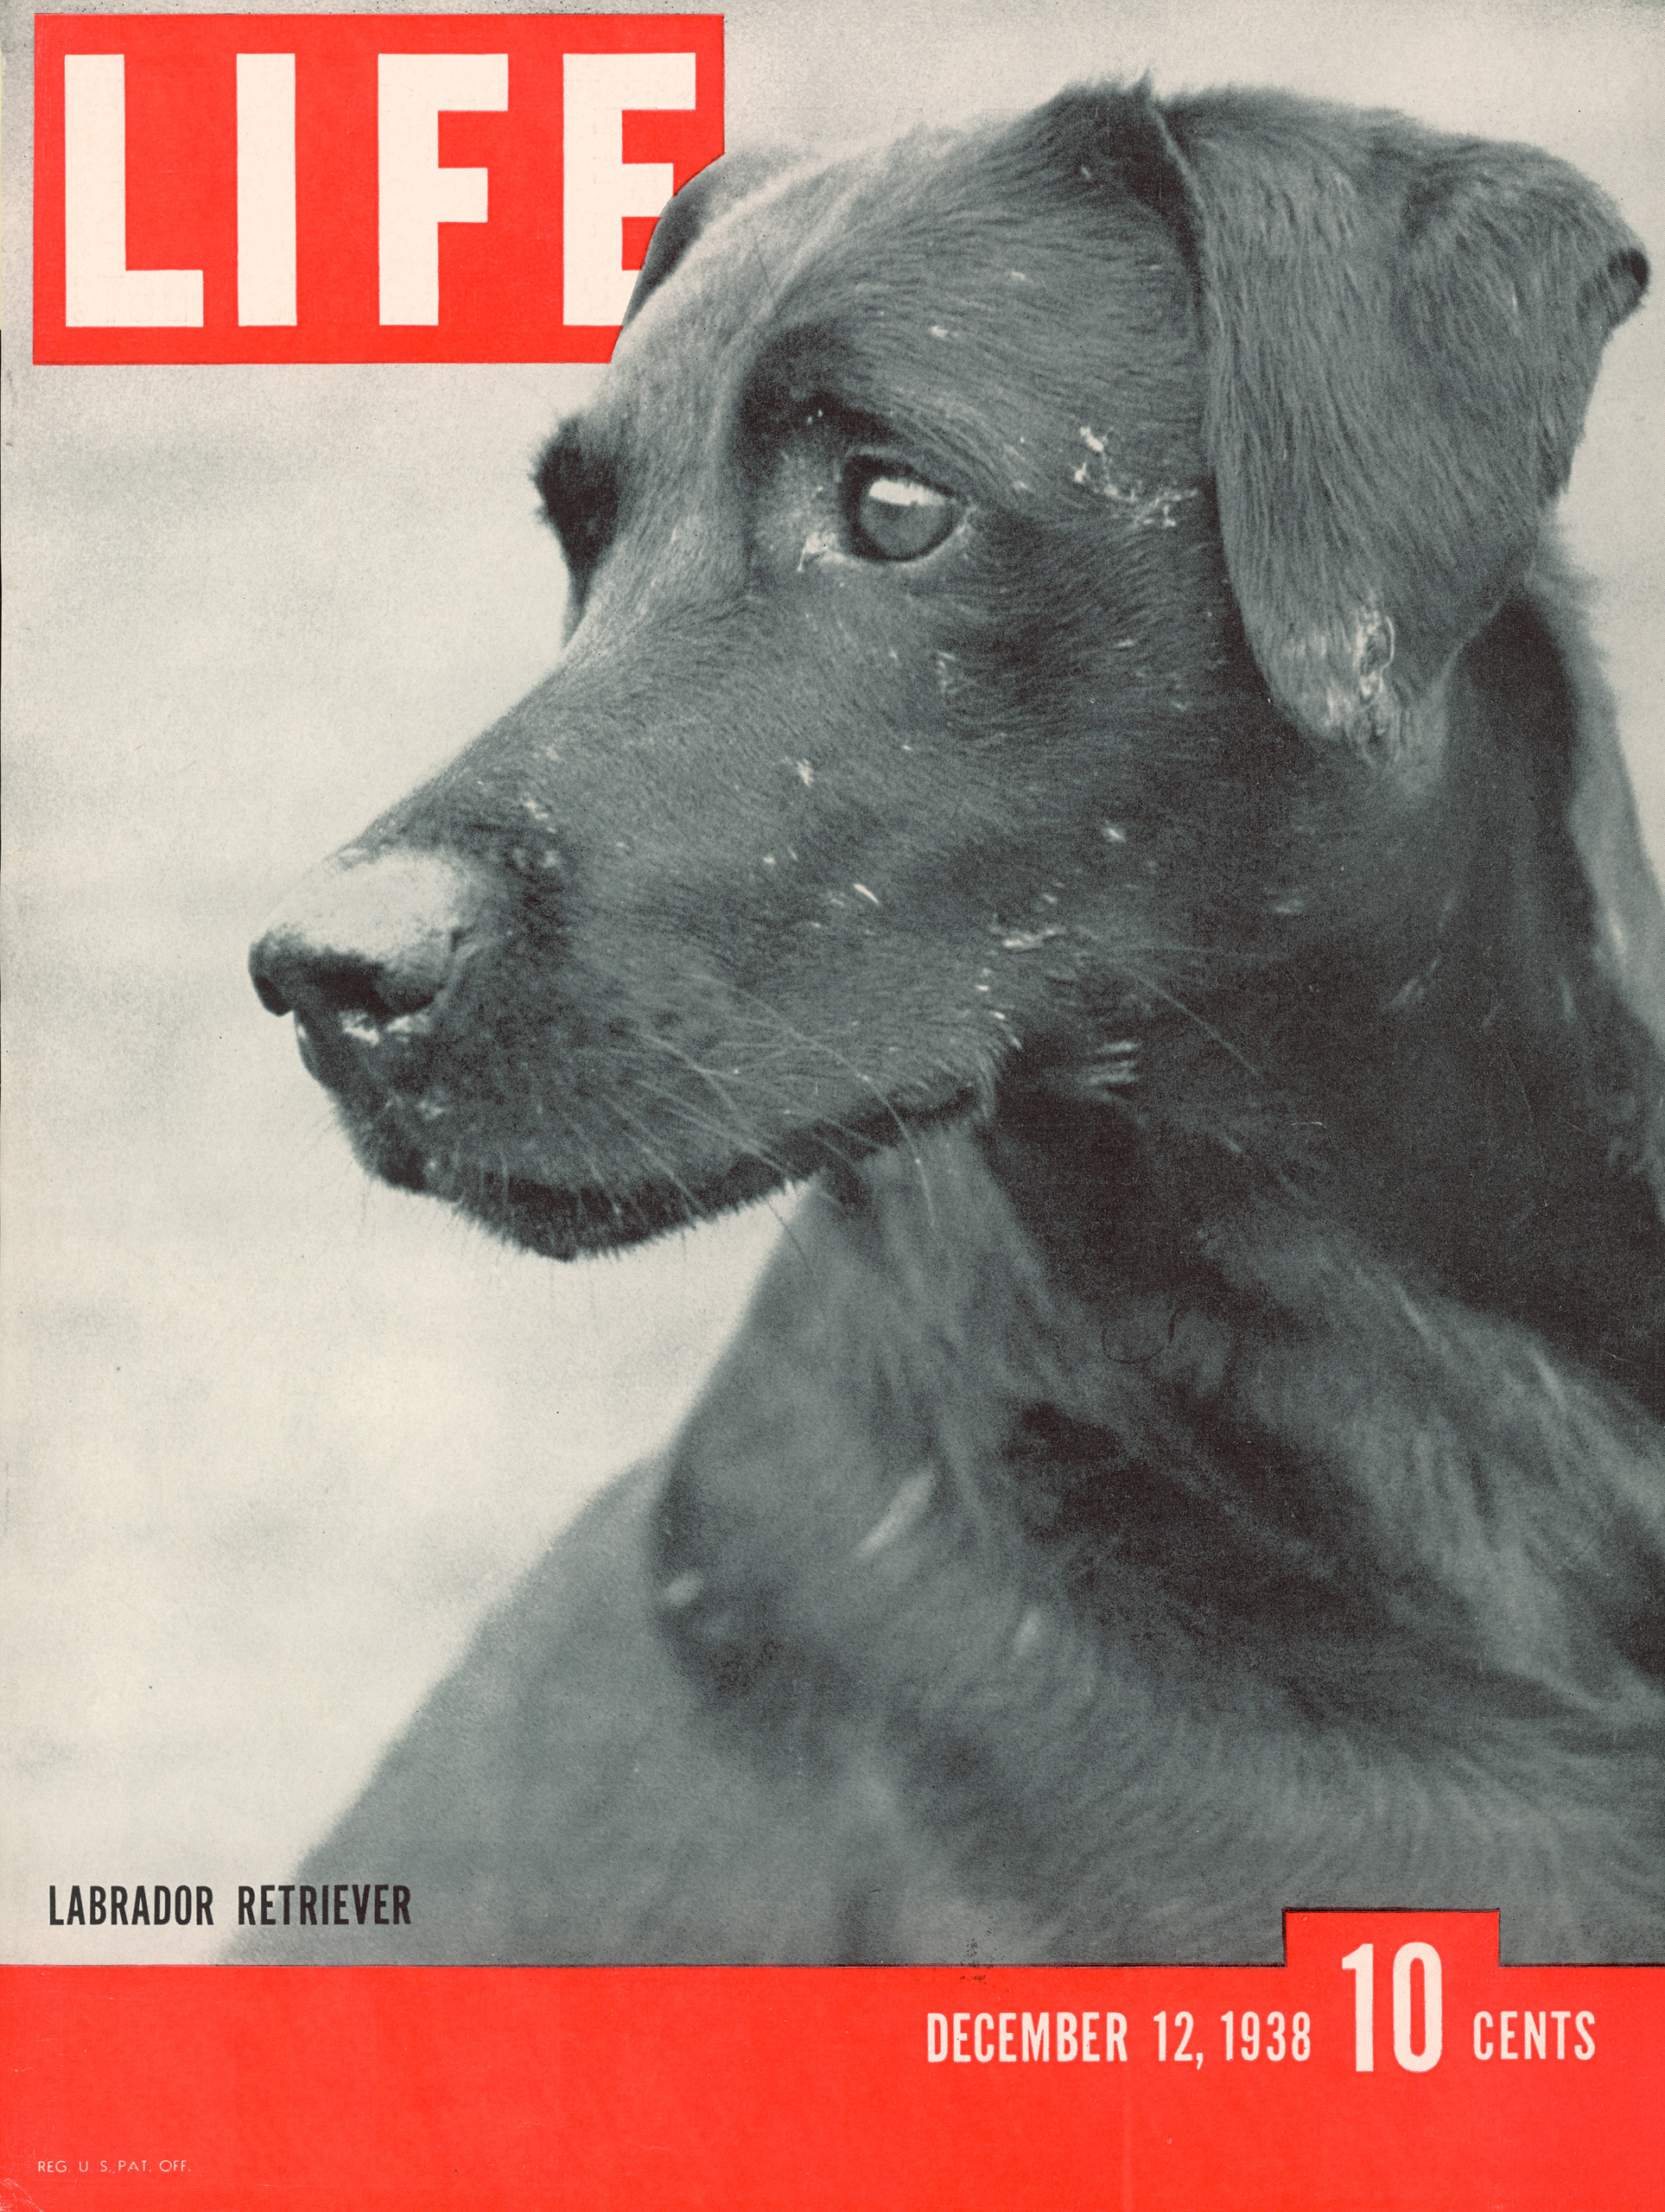 December 12, 1938 LIFE Magazine cover (photo by George Karger).